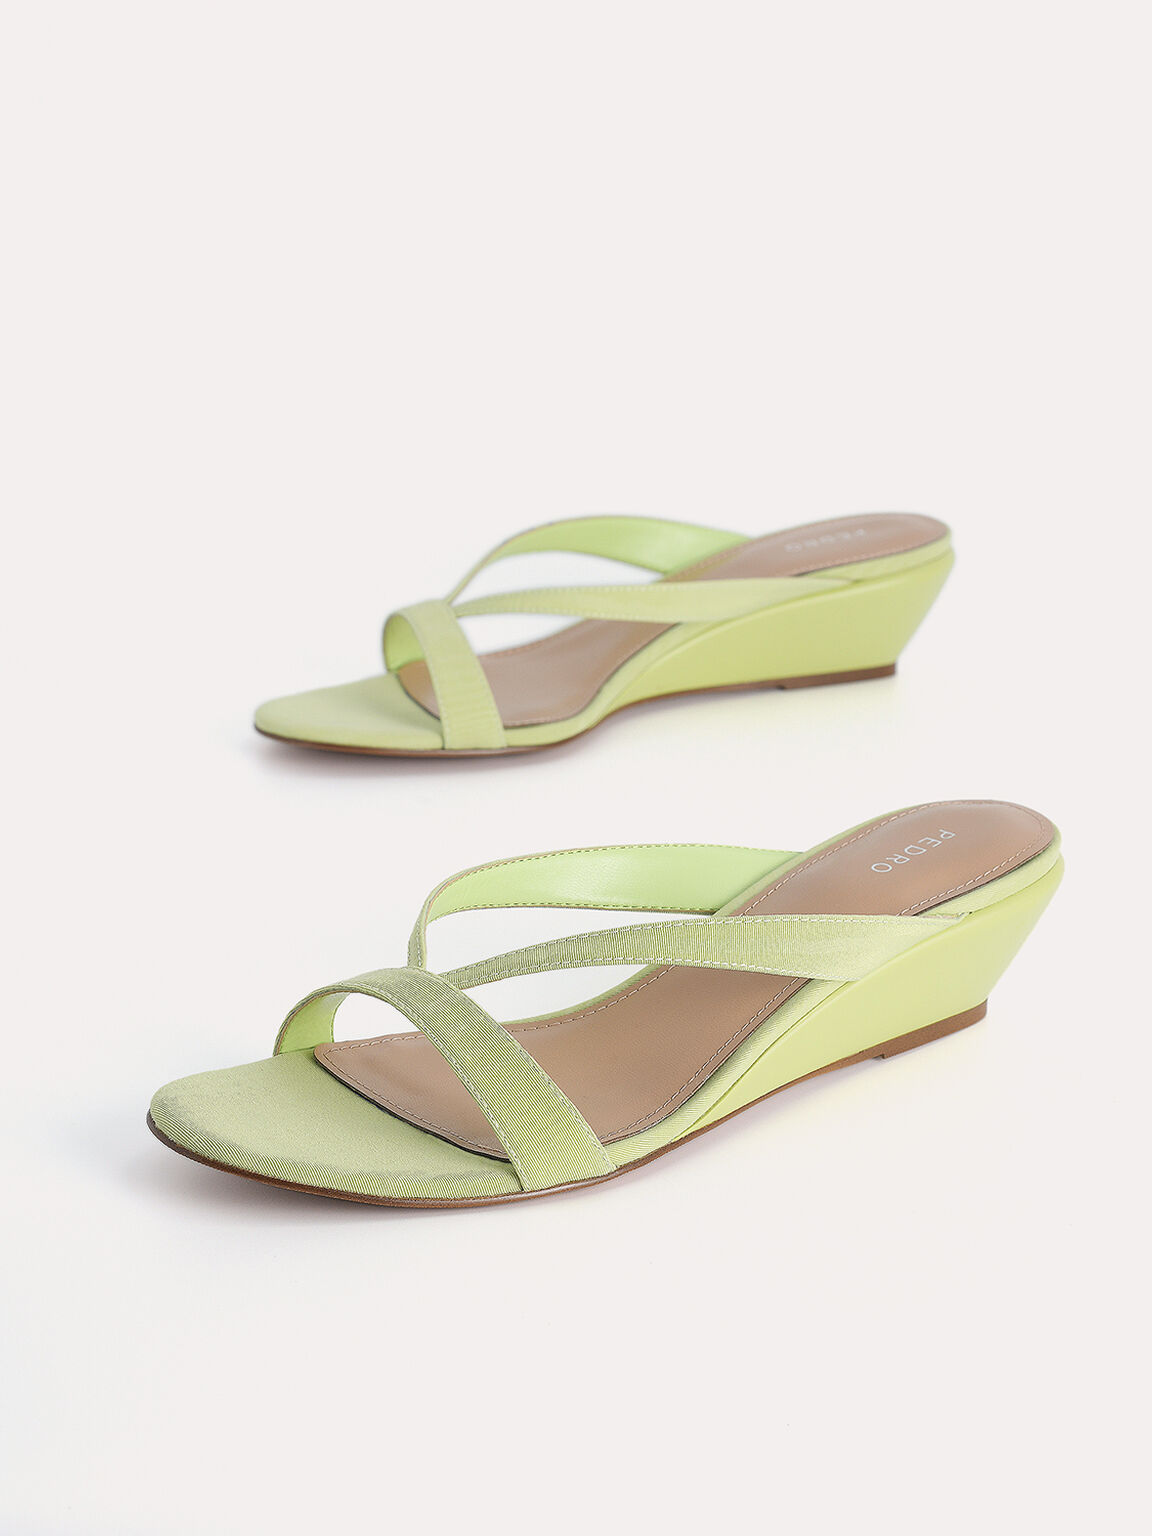 Strappy Slip-On Wedges, Light Green, hi-res